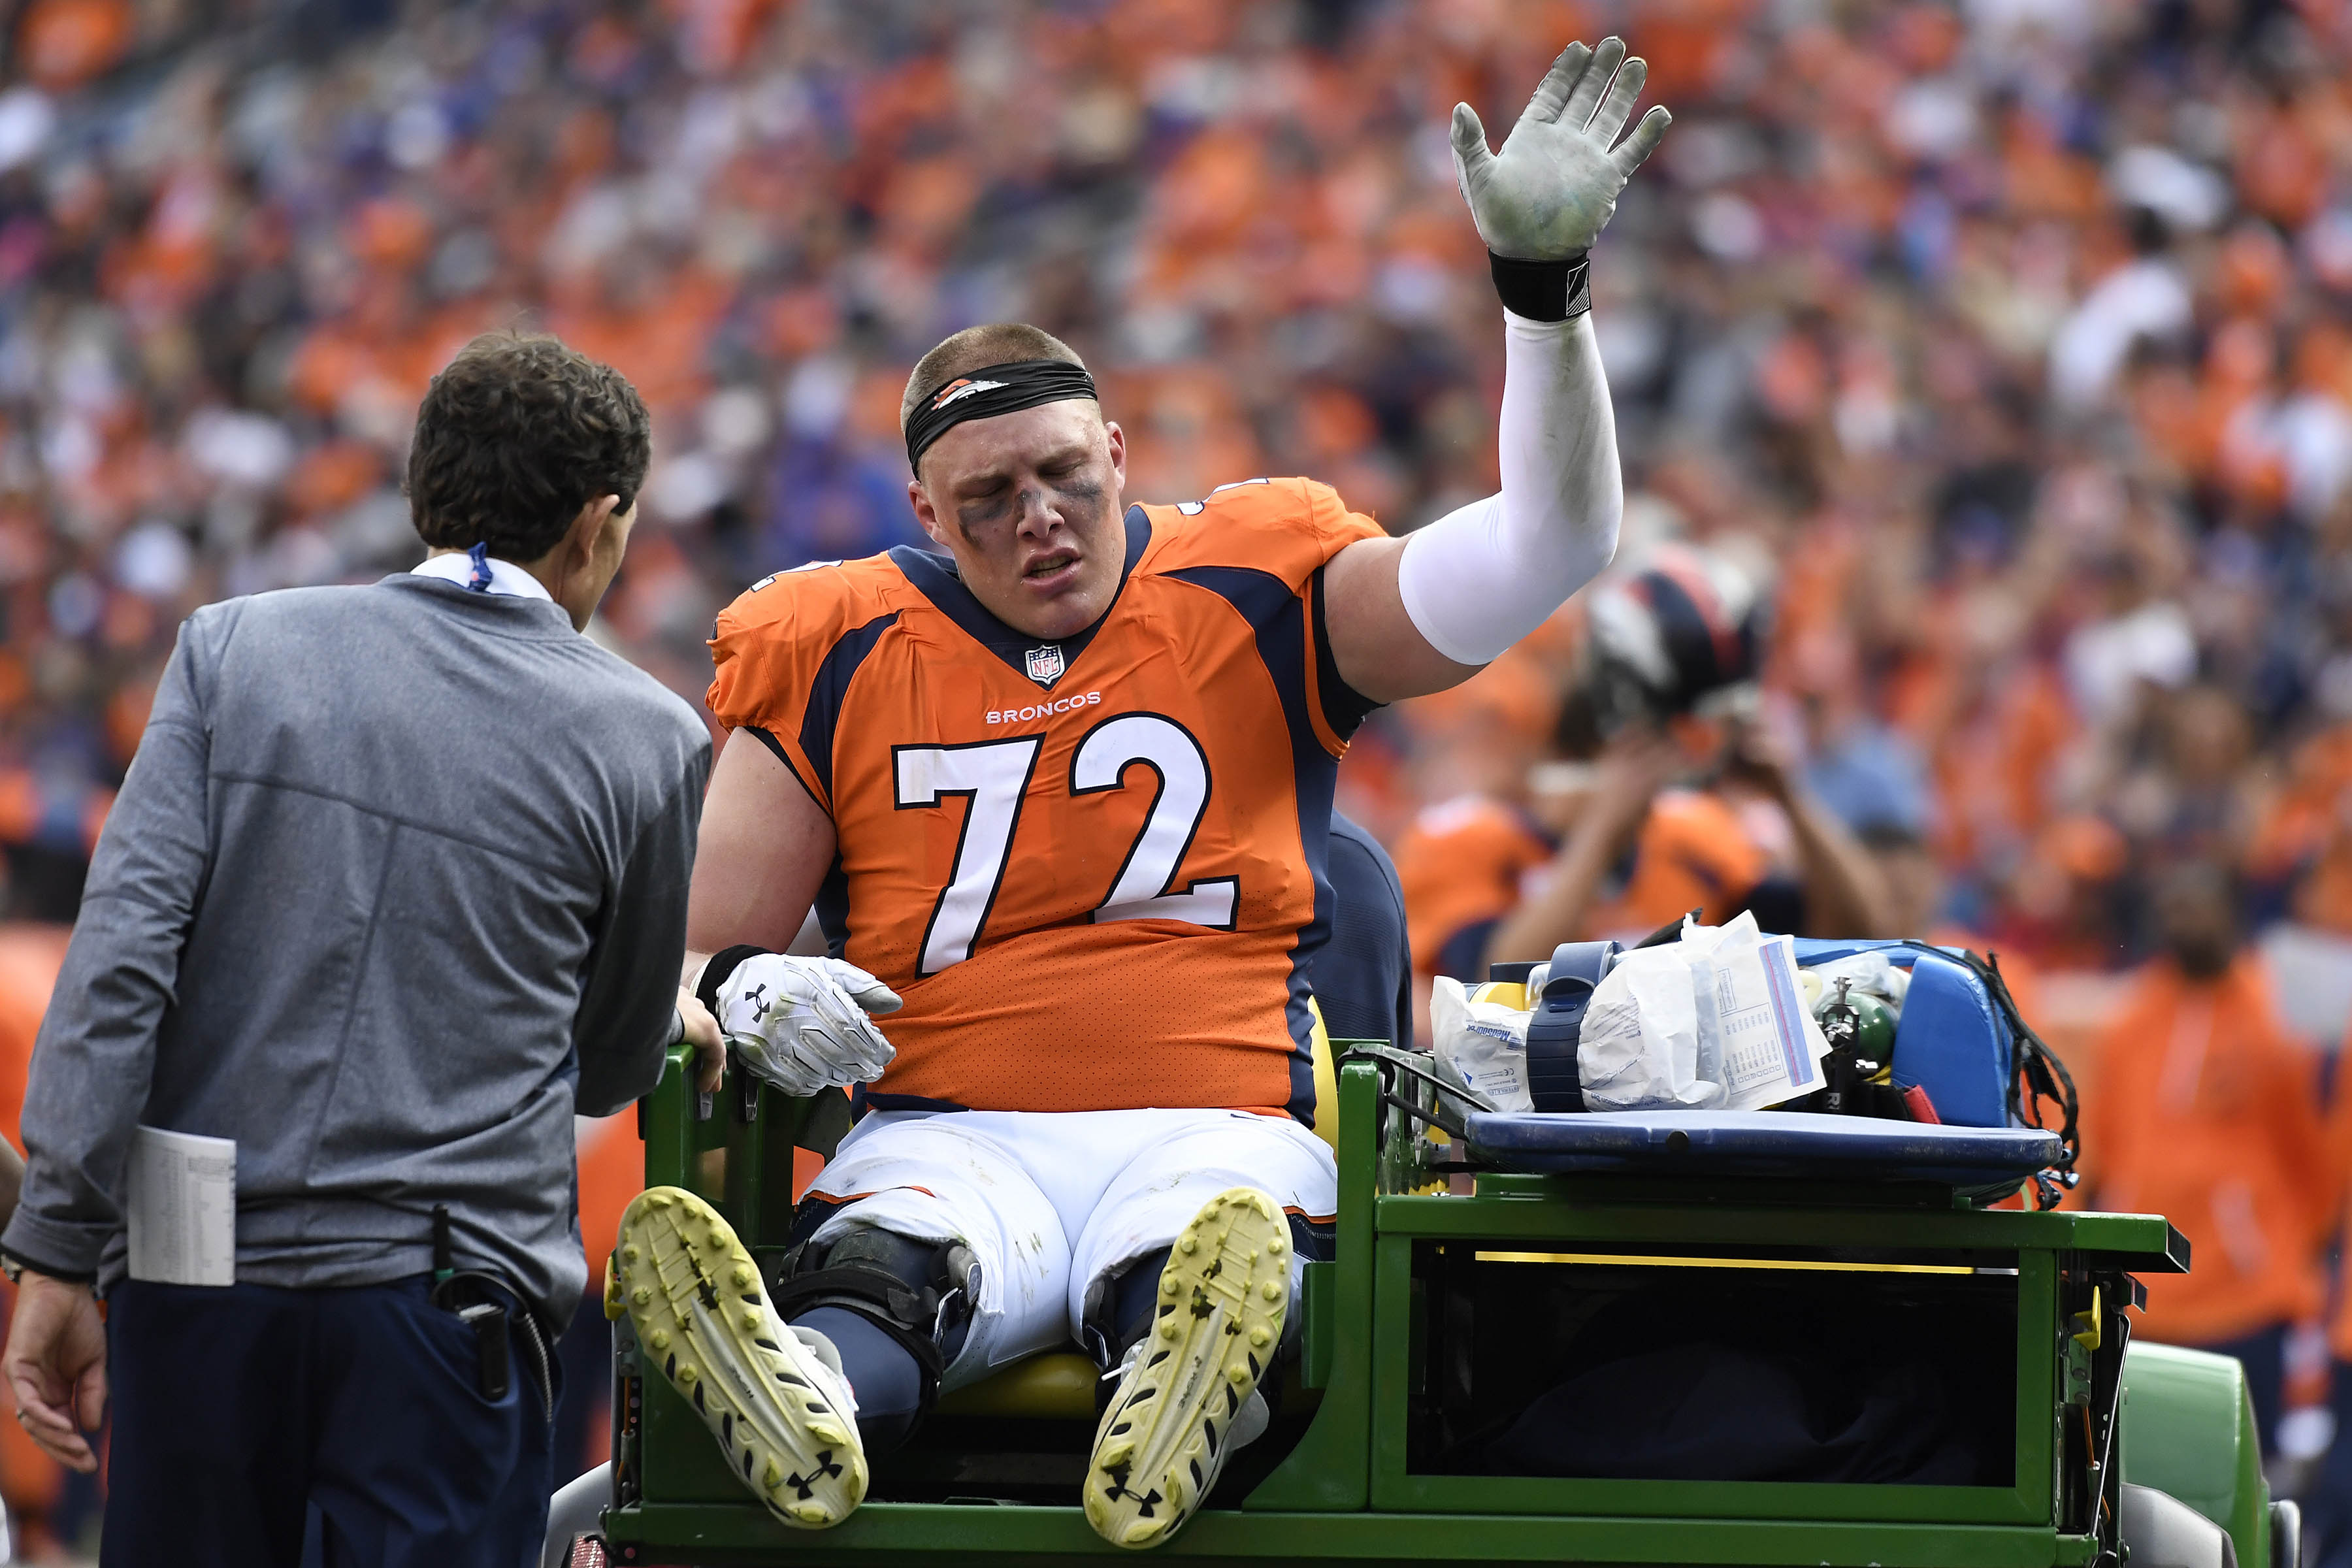 LT Garett Bolles has high ankle sprain, report says""